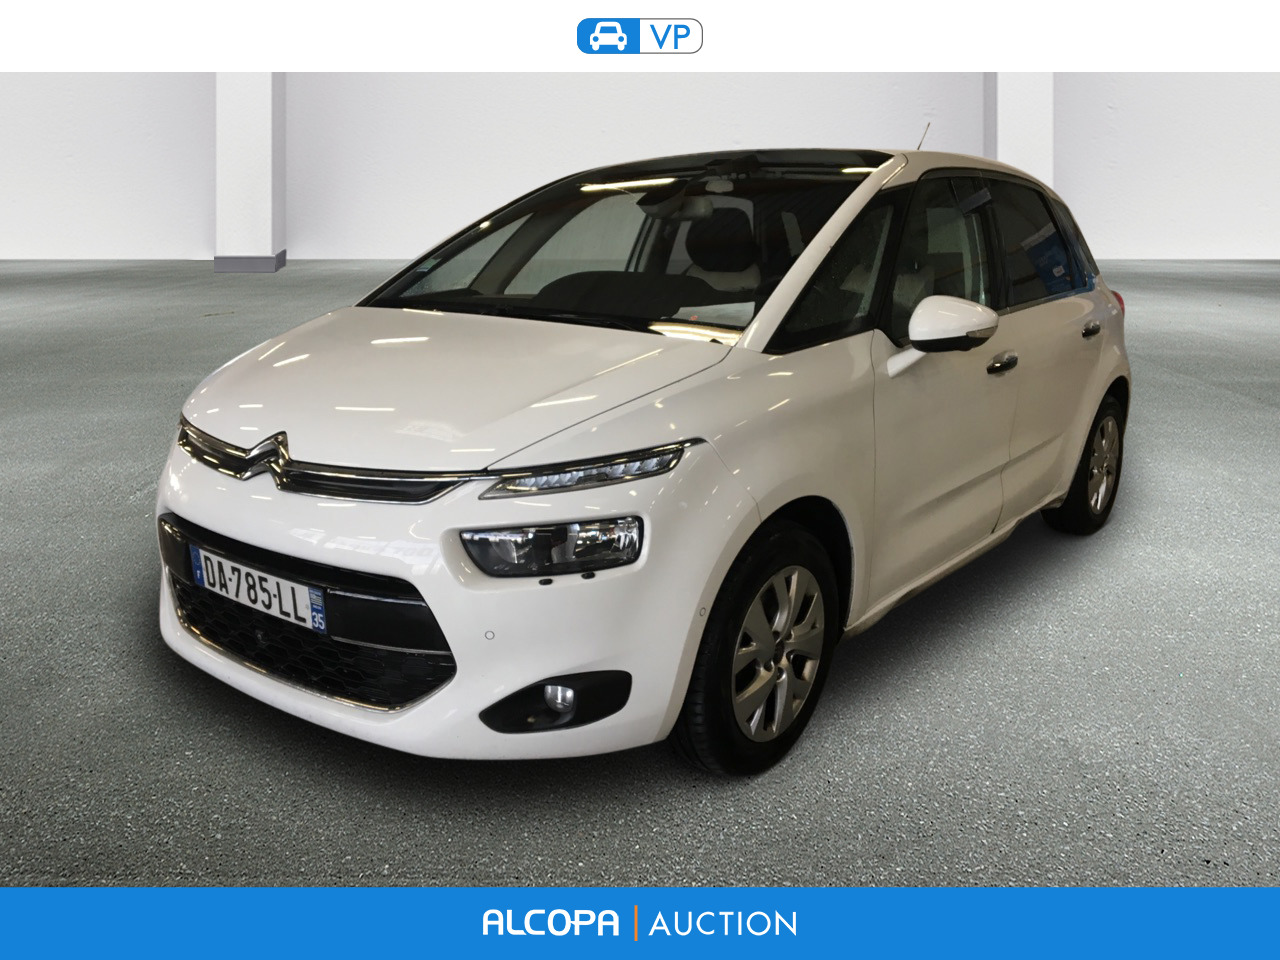 citroen c4 c4 picasso e hdi 115ch business etg6 alcopa auction. Black Bedroom Furniture Sets. Home Design Ideas